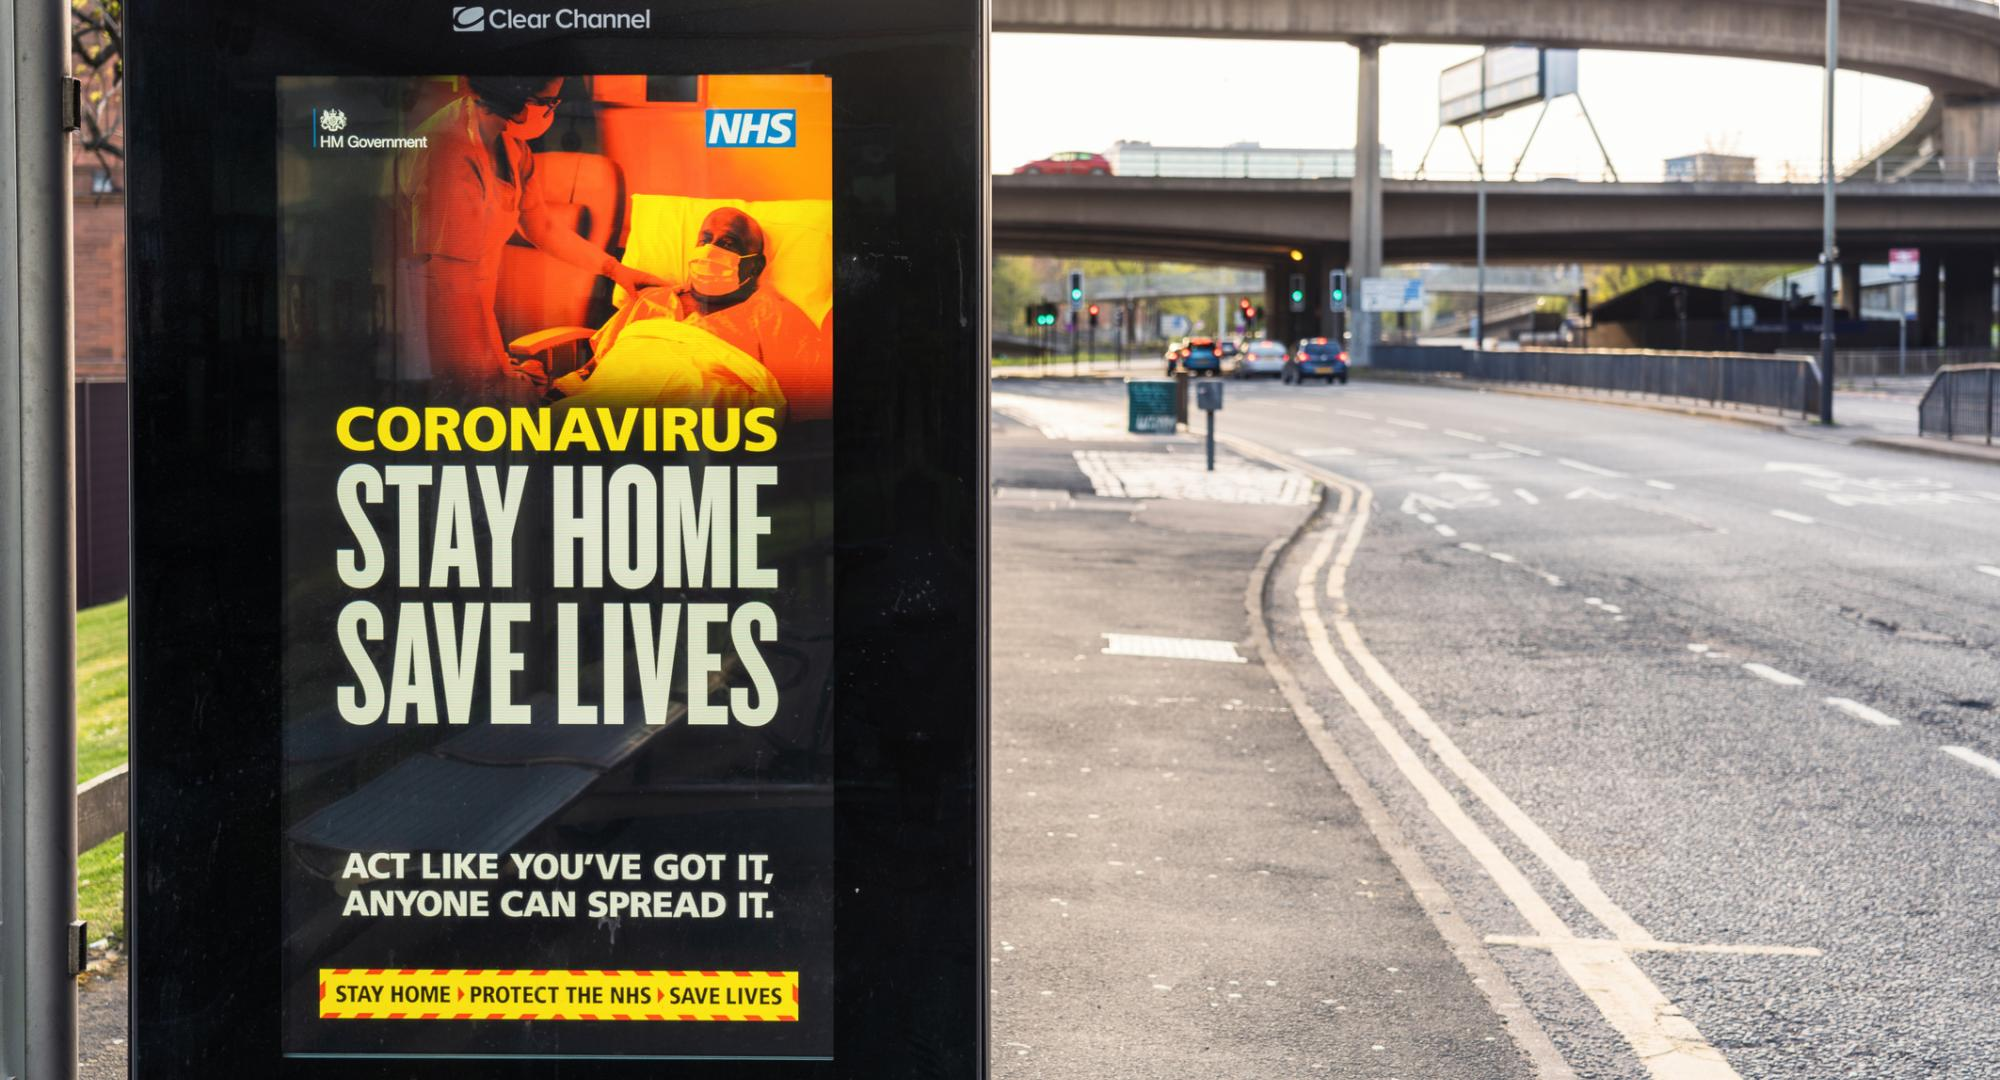 Coronavirus advert on bus stand in the UK